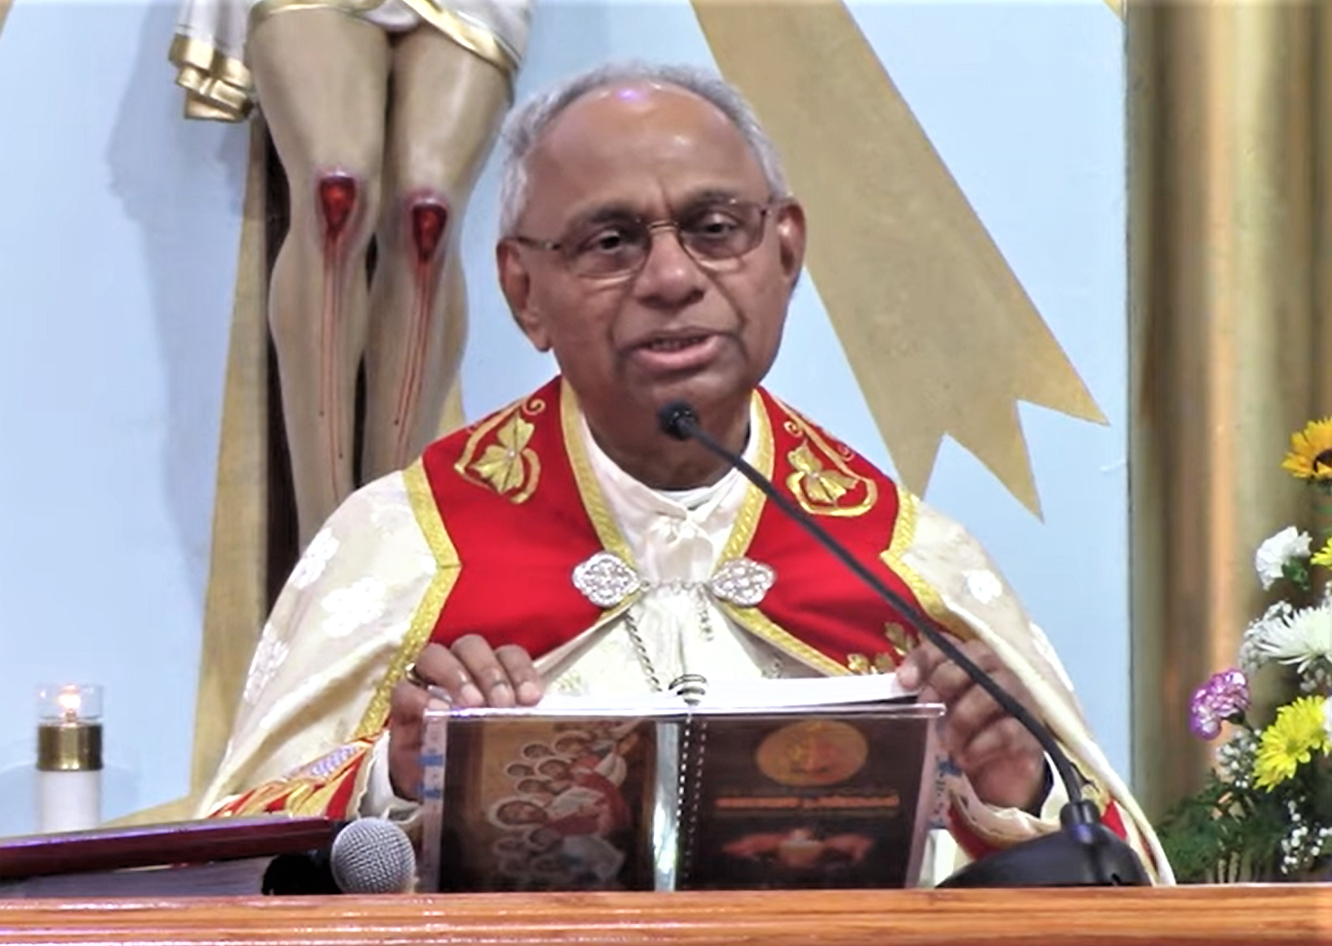 Appreciation by Fr. Mutholath and Fr. Mulavanal to Mar Angadiath and his reply on September 19, 2021